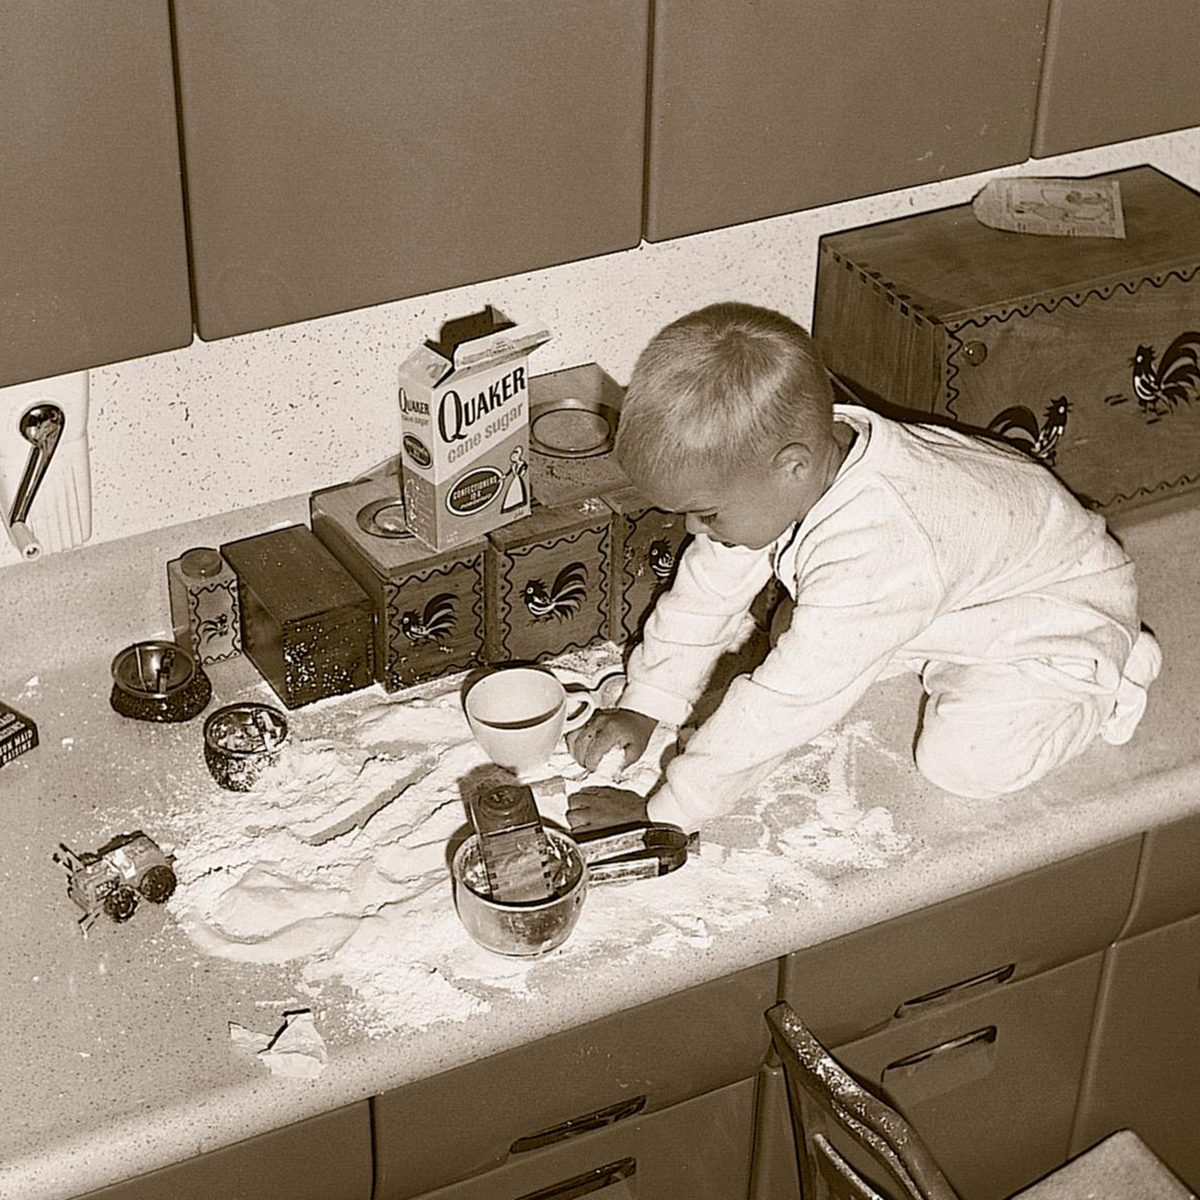 little boy making a mess with flour on the counter